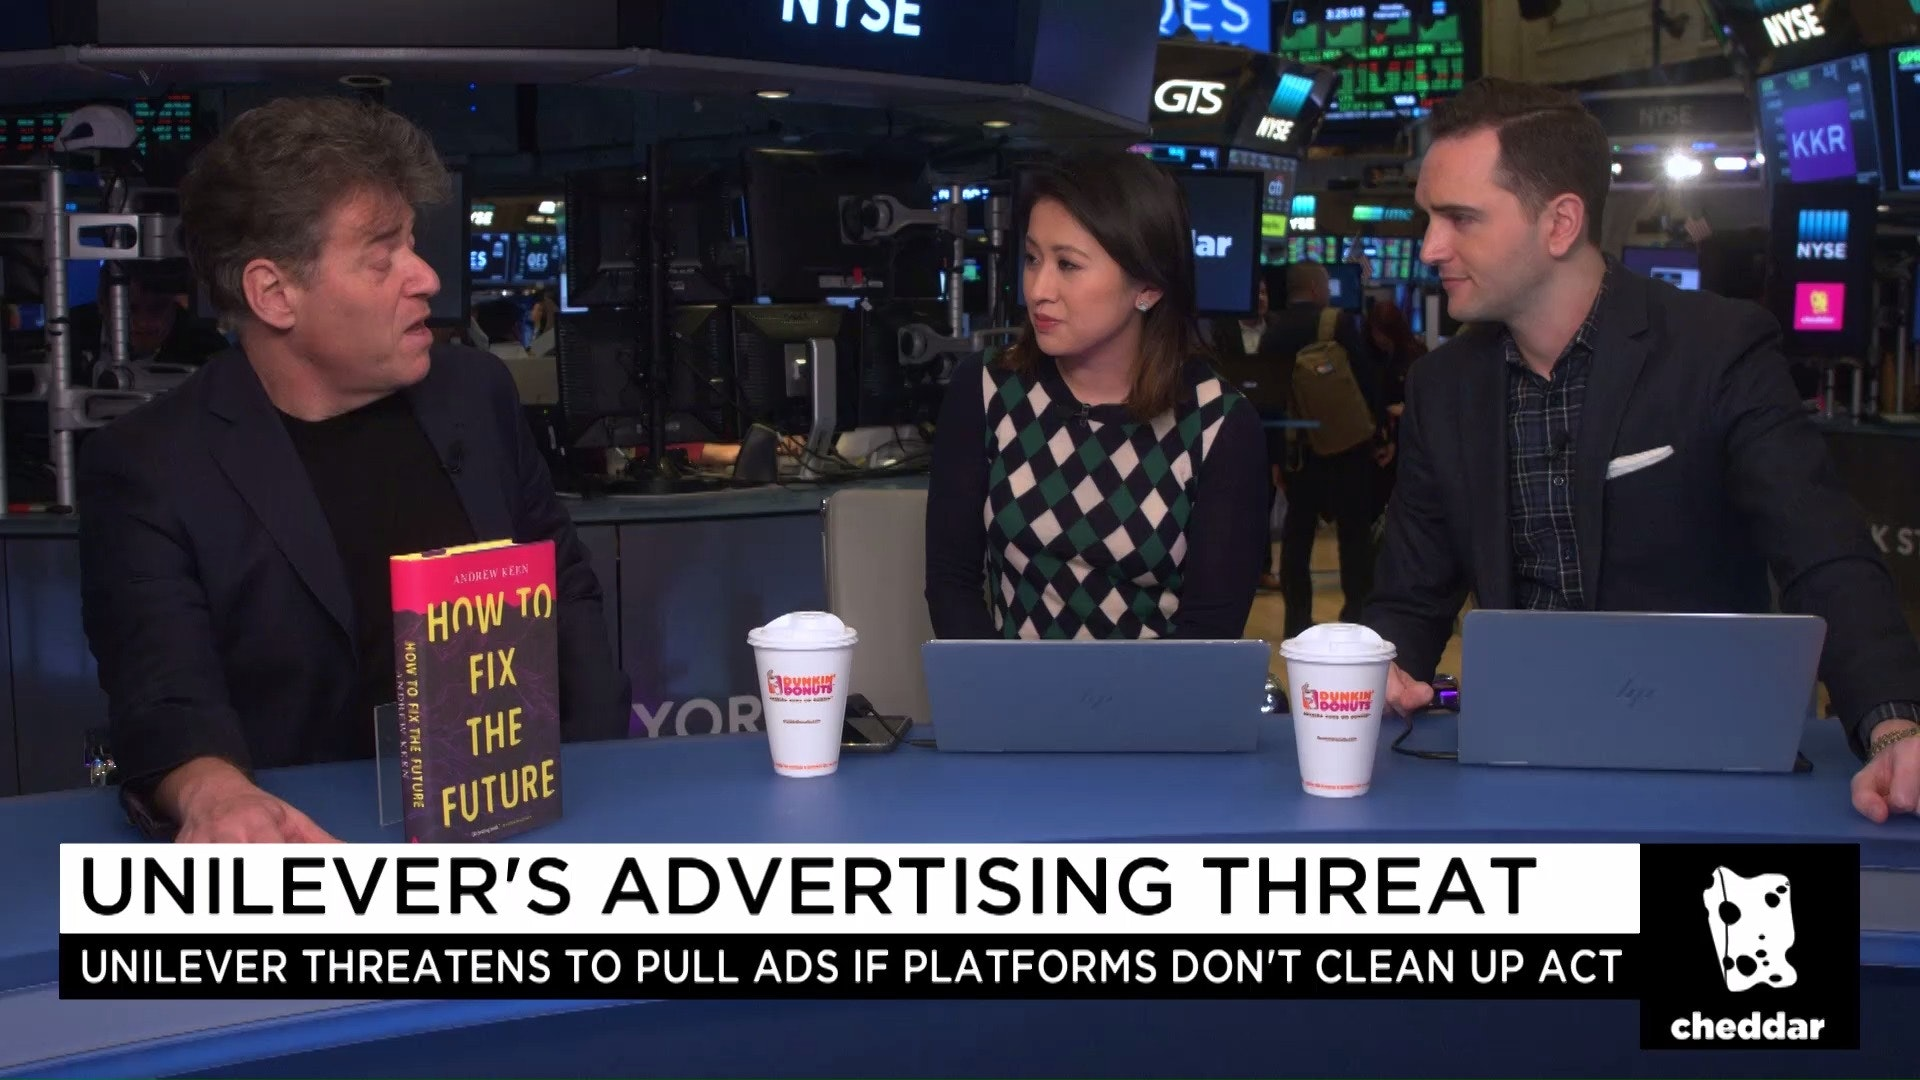 Fixing the Internet - Cheddar LIVE interview at the New York Stock Exchange with Hope King and Baker Machado about Unilever, Facebook, and How to Fix the Future.